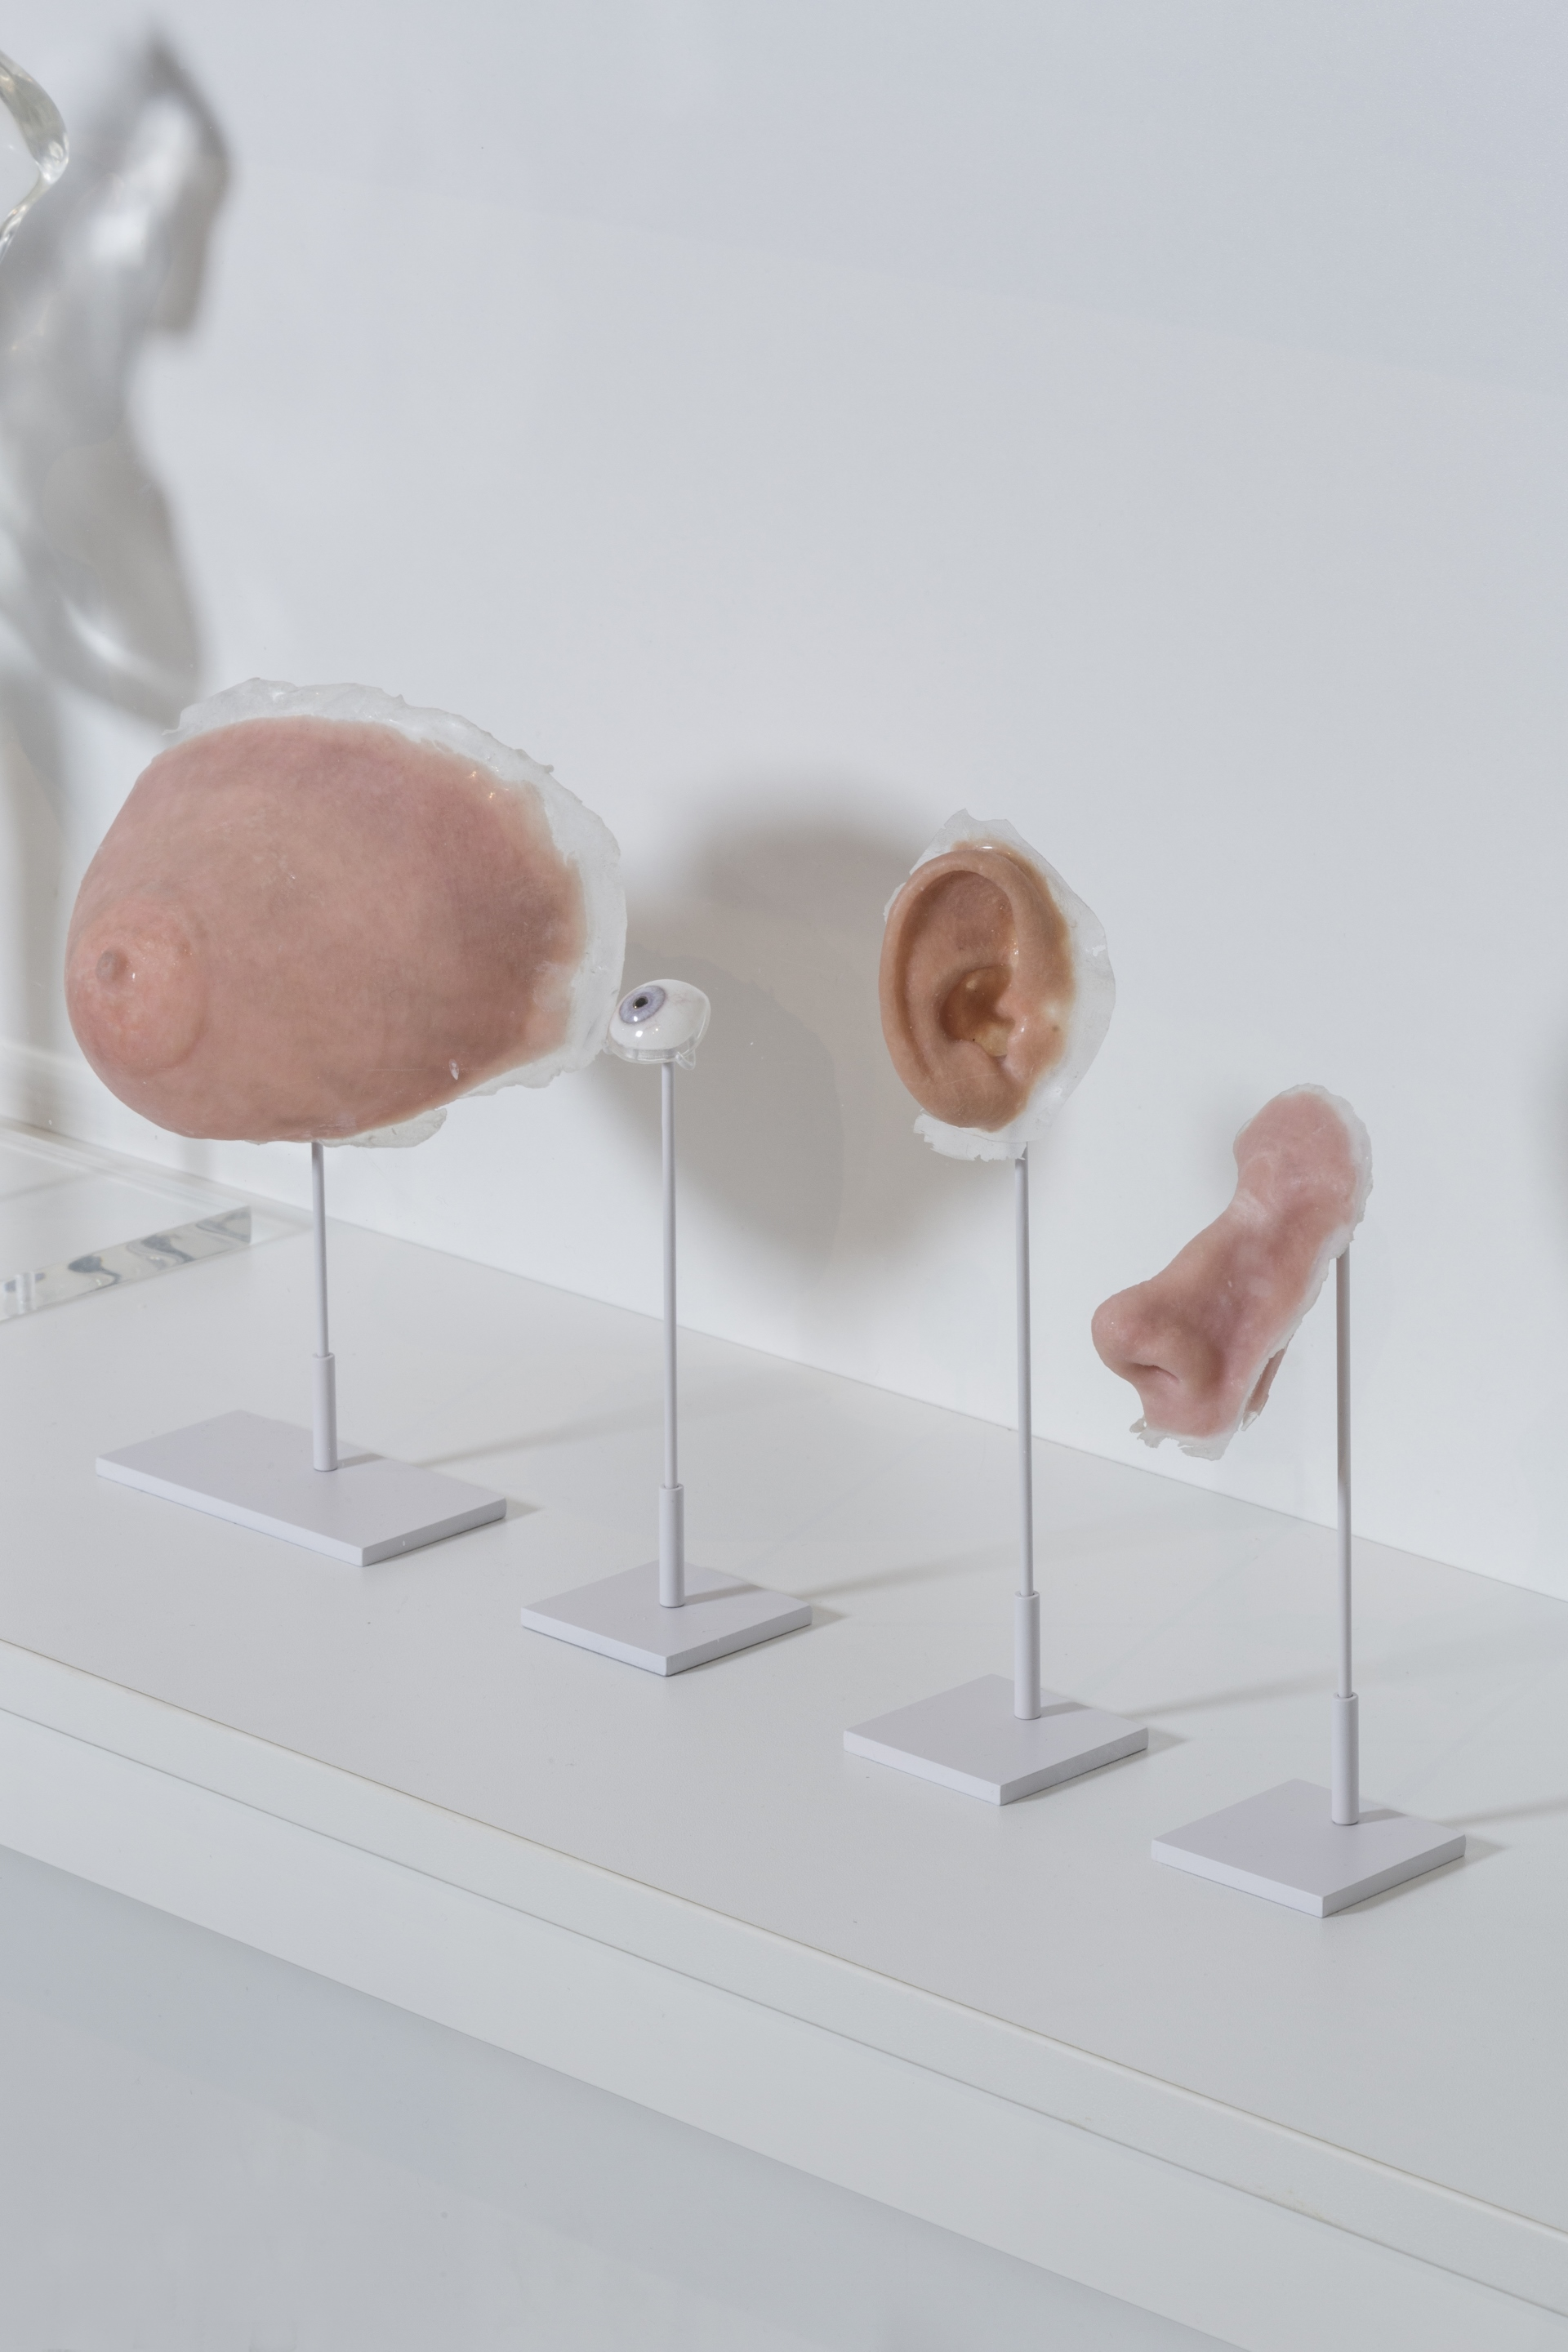 Medical prosthetics -breast, eye, ear, nose by Fripp Design & Research. Photo © Museums Sheffield